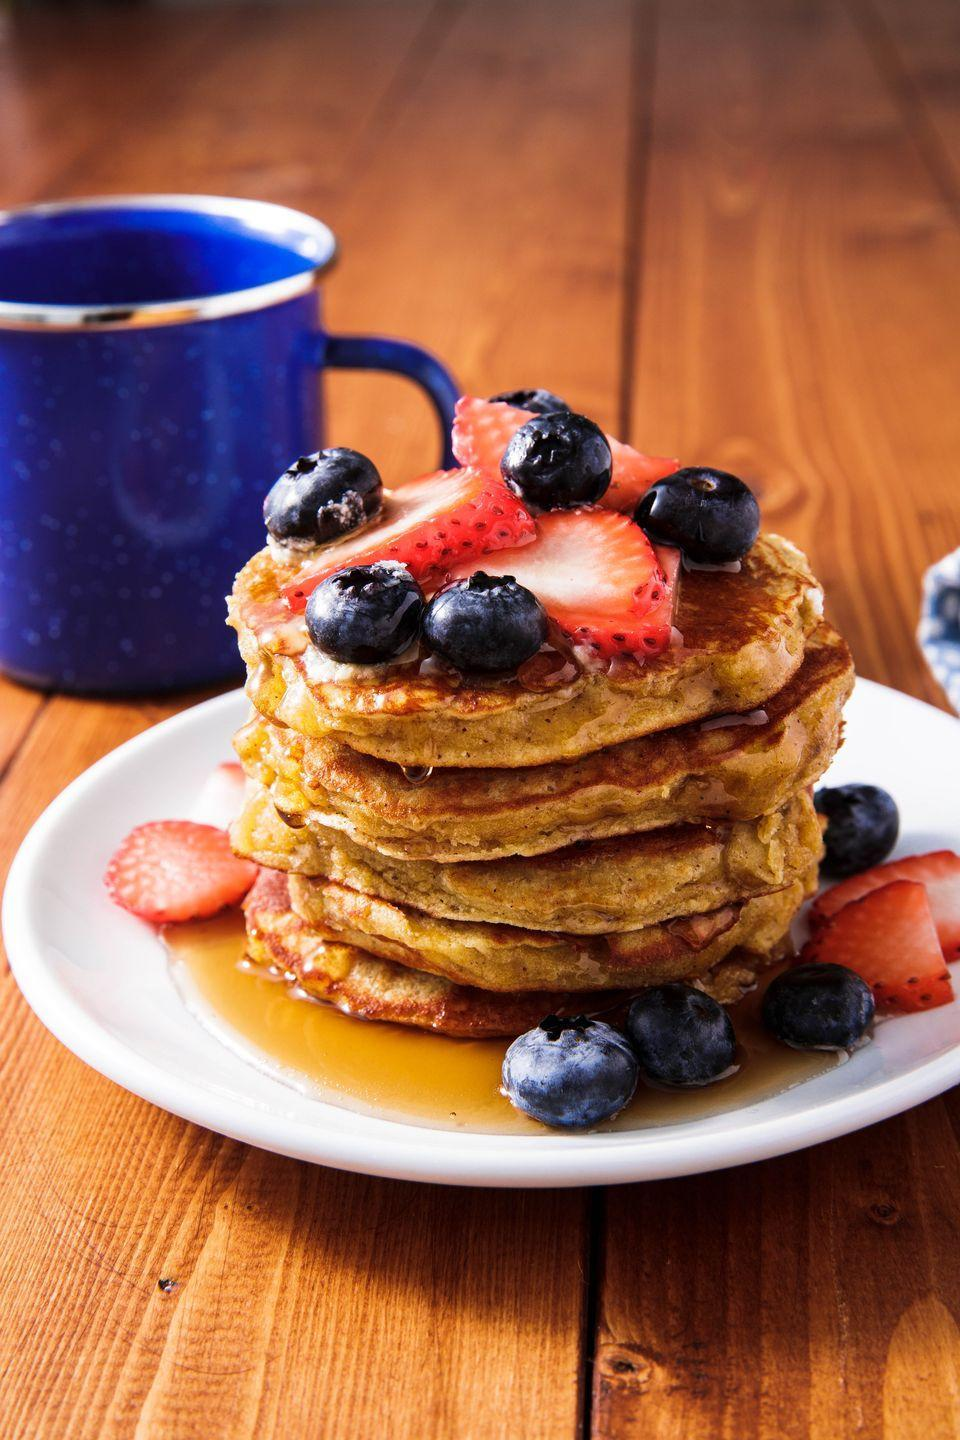 "<p>Curb the early morning carb craving with a stack of these. </p><p>Get the recipe from <a href=""https://www.delish.com/cooking/recipe-ideas/a25350983/best-paleo-pancake-recipe/"" rel=""nofollow noopener"" target=""_blank"" data-ylk=""slk:Delish"" class=""link rapid-noclick-resp"">Delish</a>. </p>"